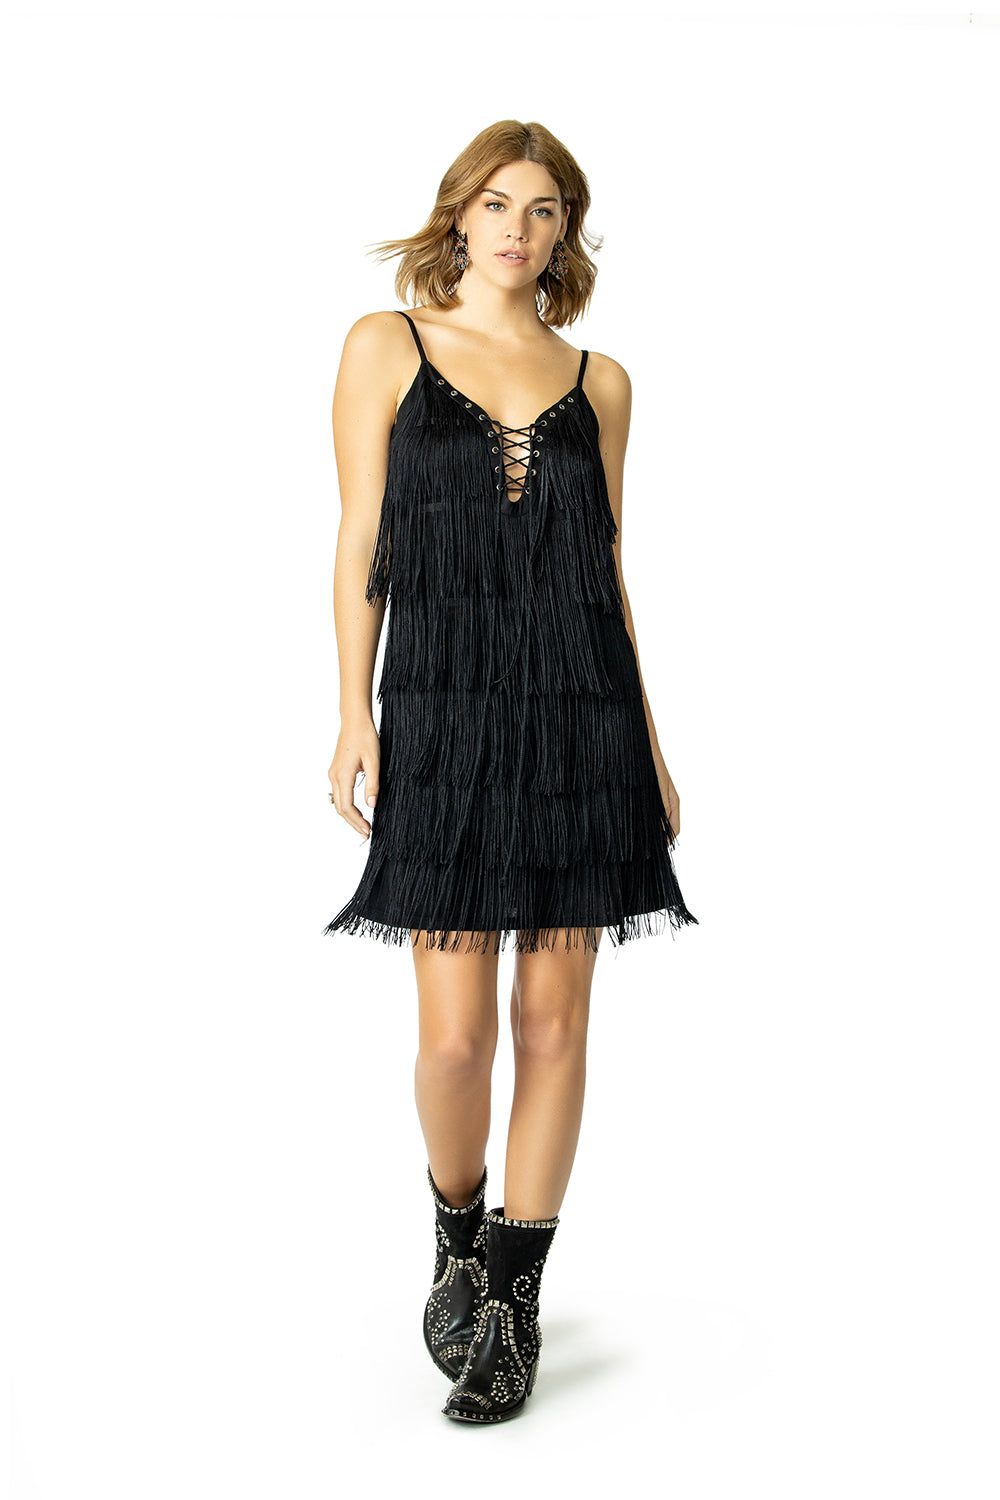 Rockabillie Wanda Dress